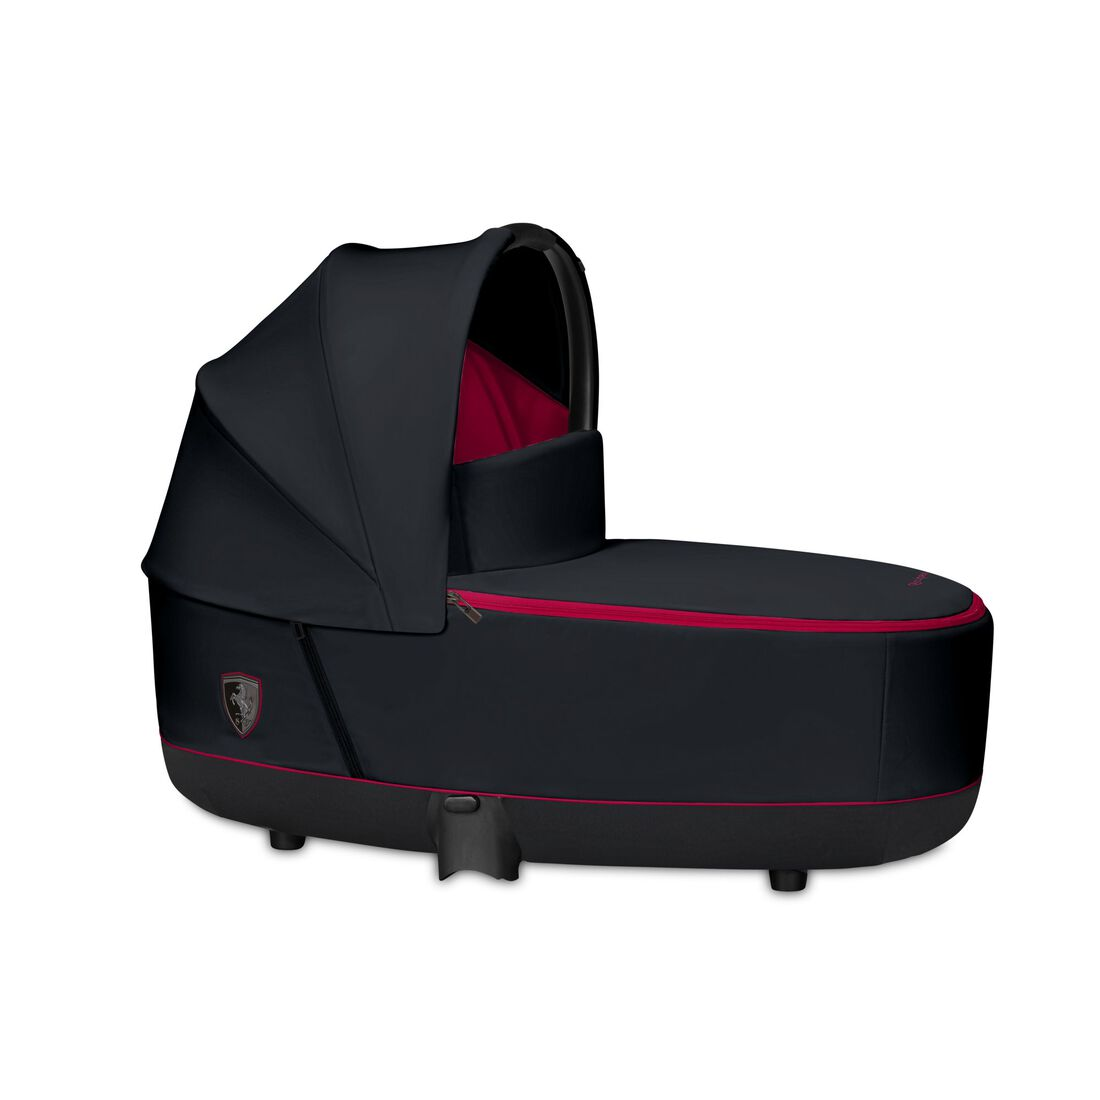 CYBEX Priam Lux Carry Cot - Ferrari Victory Black in Ferrari Victory Black large image number 1